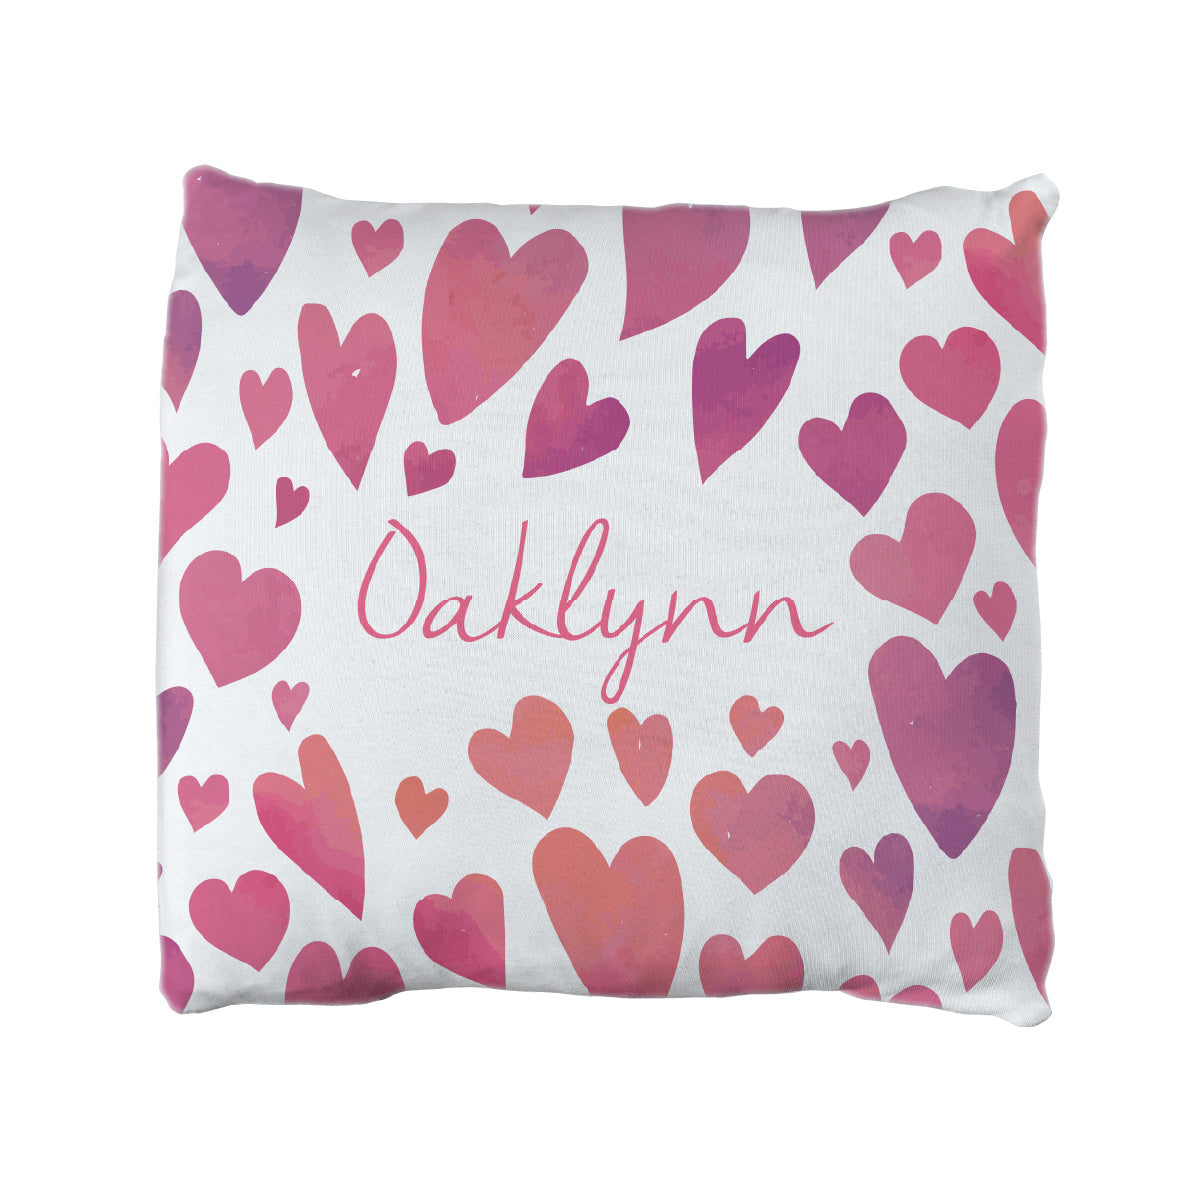 Oaklynn's Watercolor Hearts | Big Kid Throw Pillow